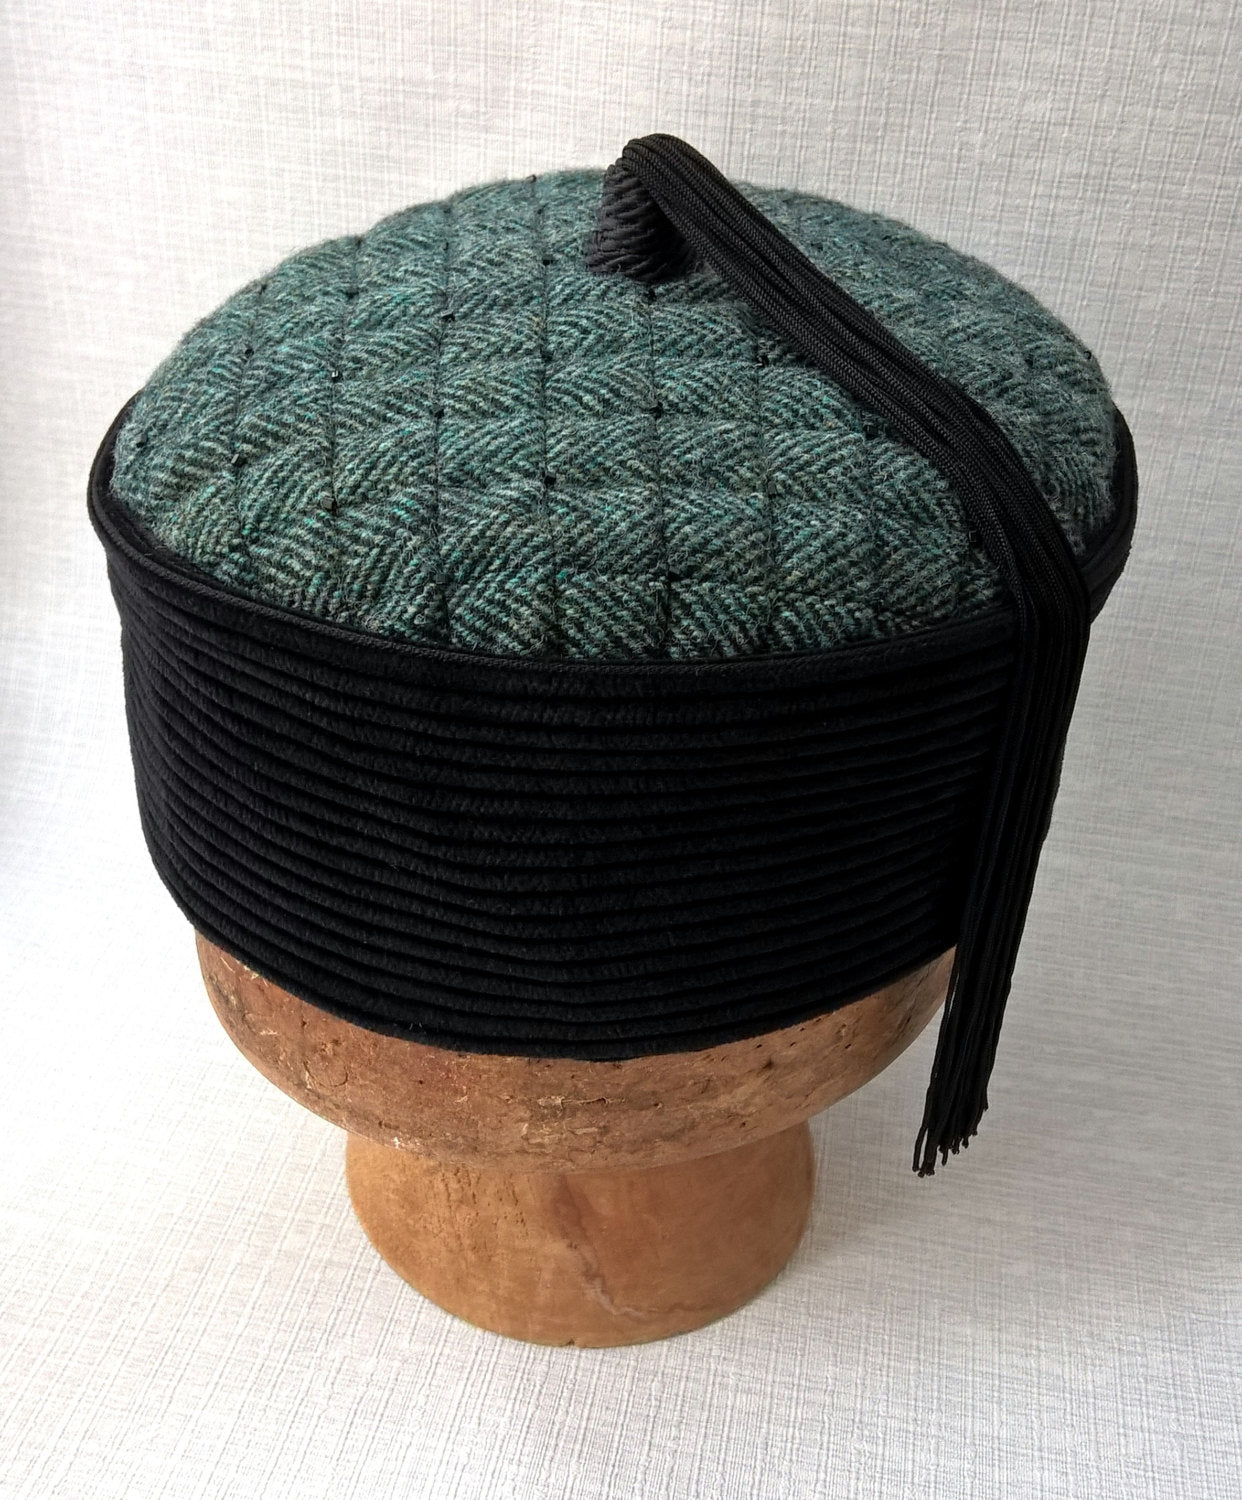 Oriental style tassel smoking cap with a green herringbone tip and black corduroy crown